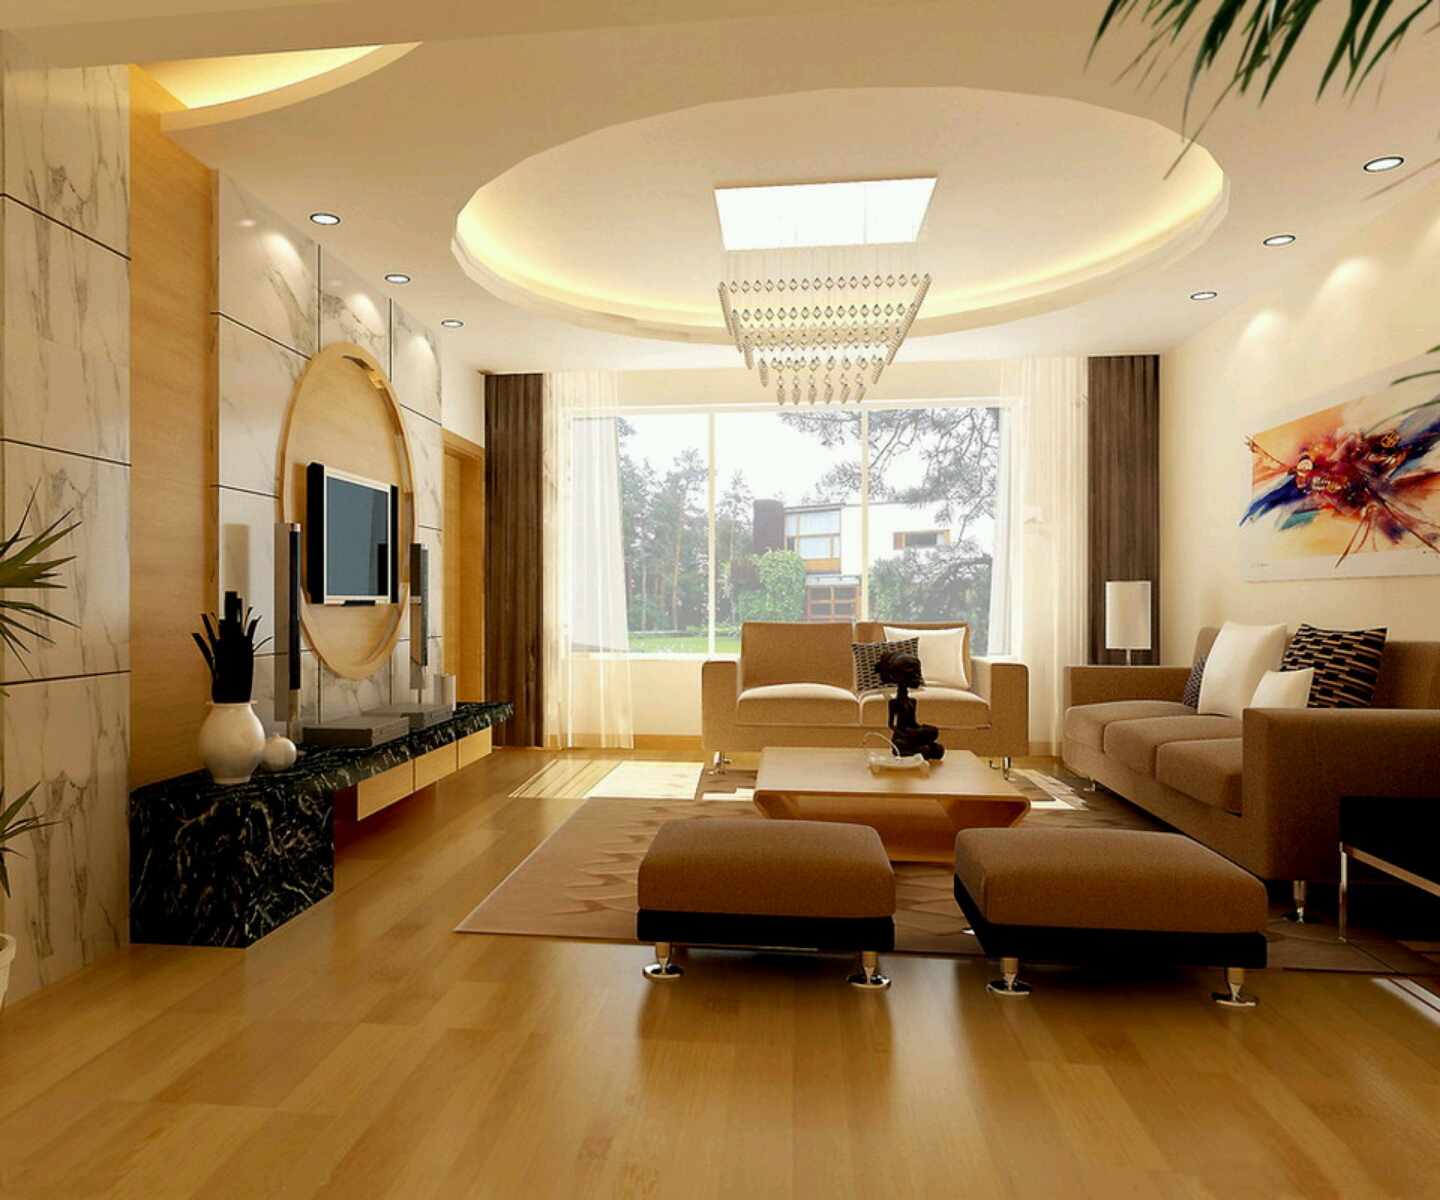 Home Design Ideas Easy: Modern Interior Decoration Living Rooms Ceiling Designs